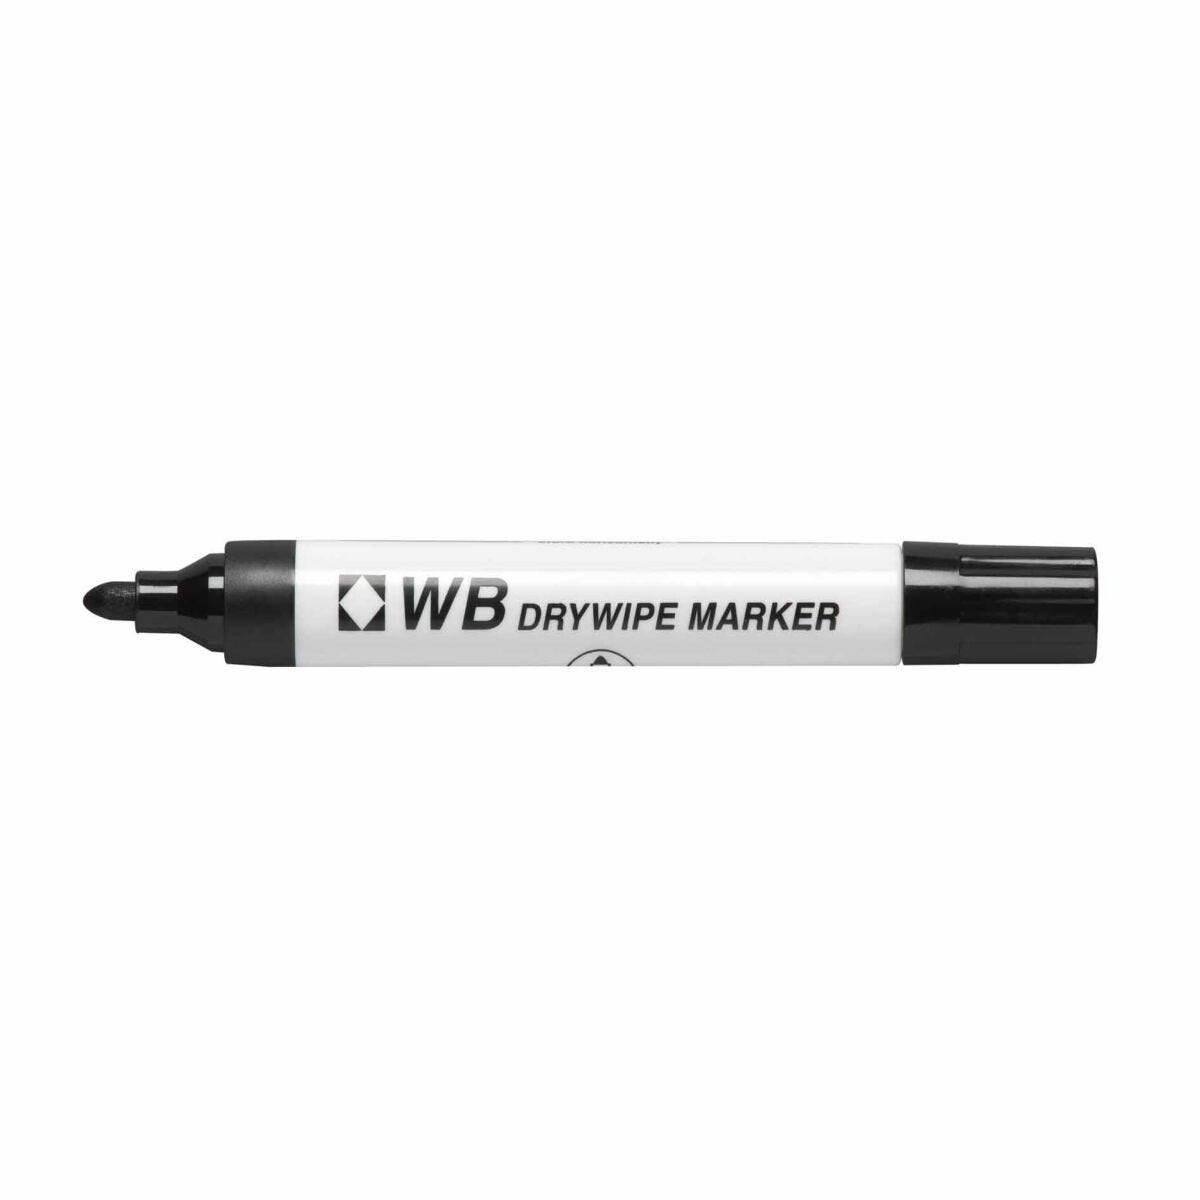 WB Drywipe Marker Pack of 10